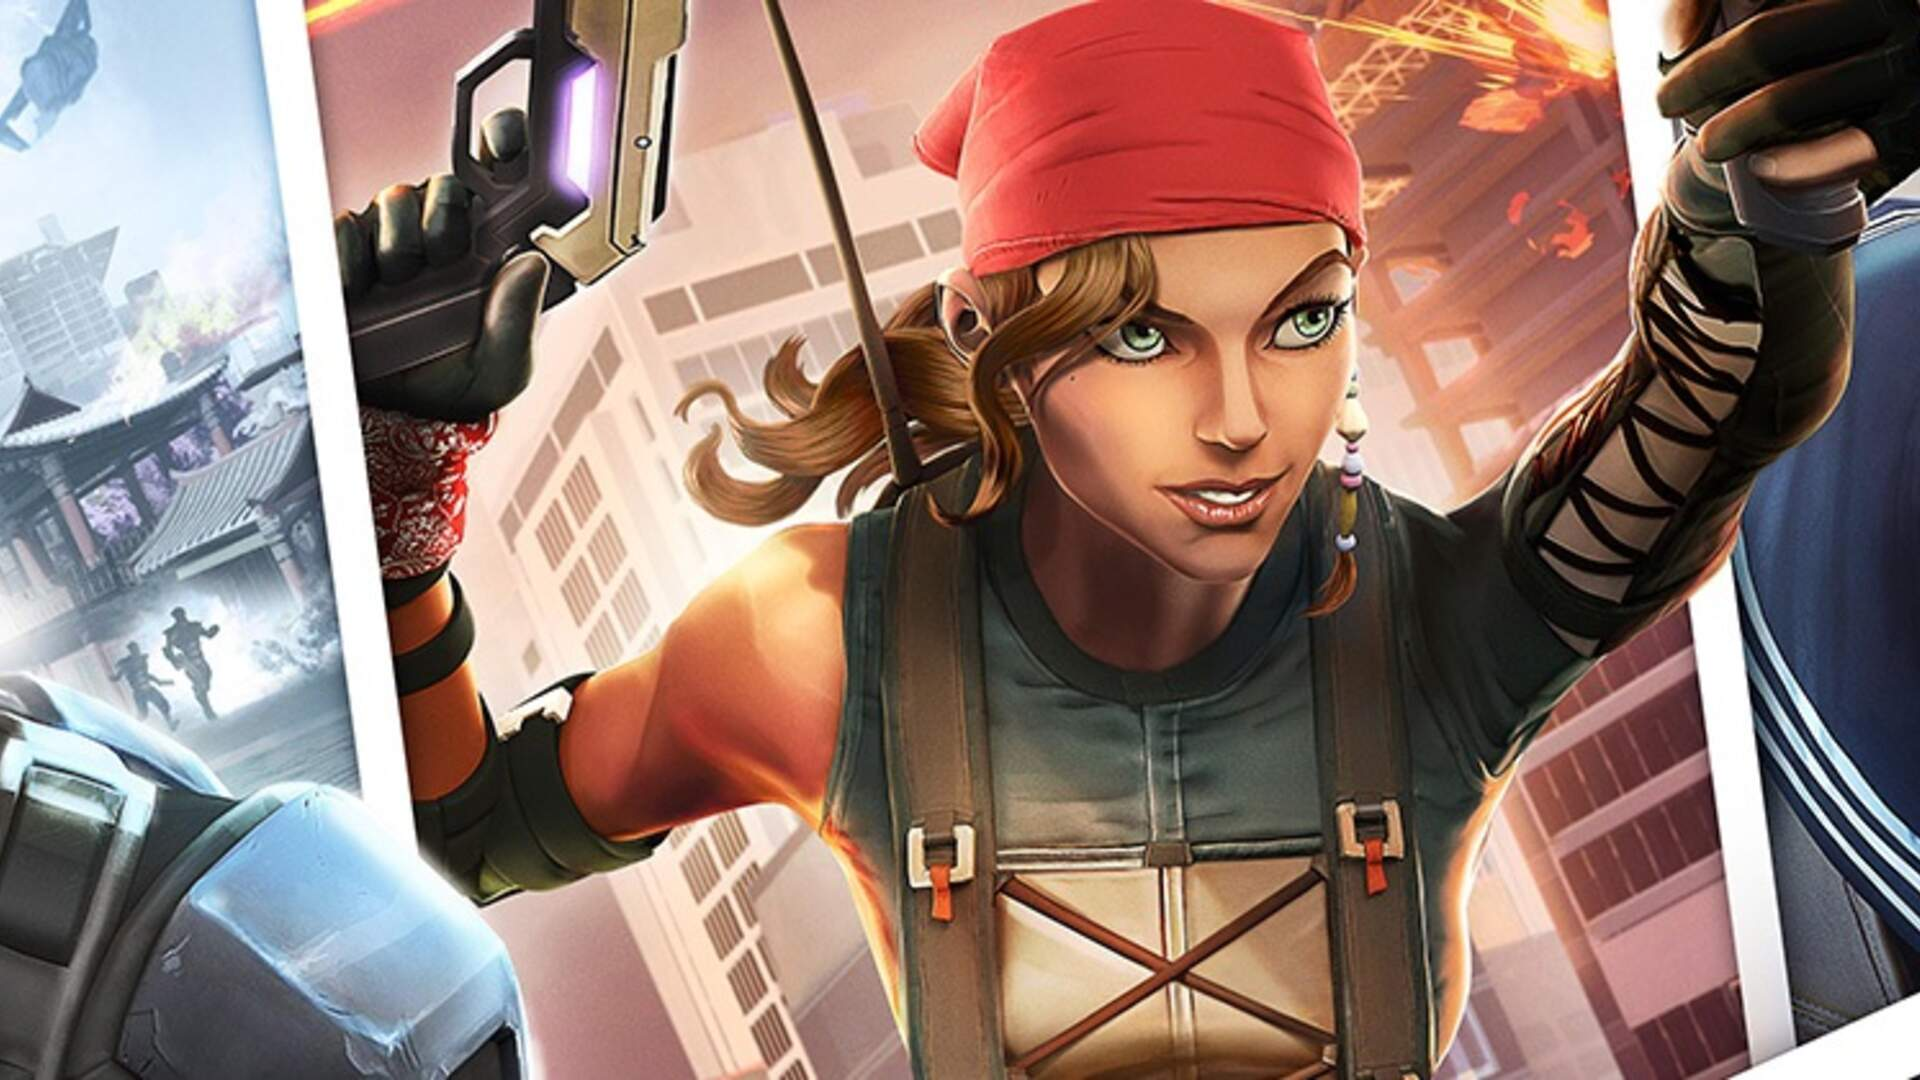 Agents of Mayhem is the G.I. Joe Game You've Been Waiting For